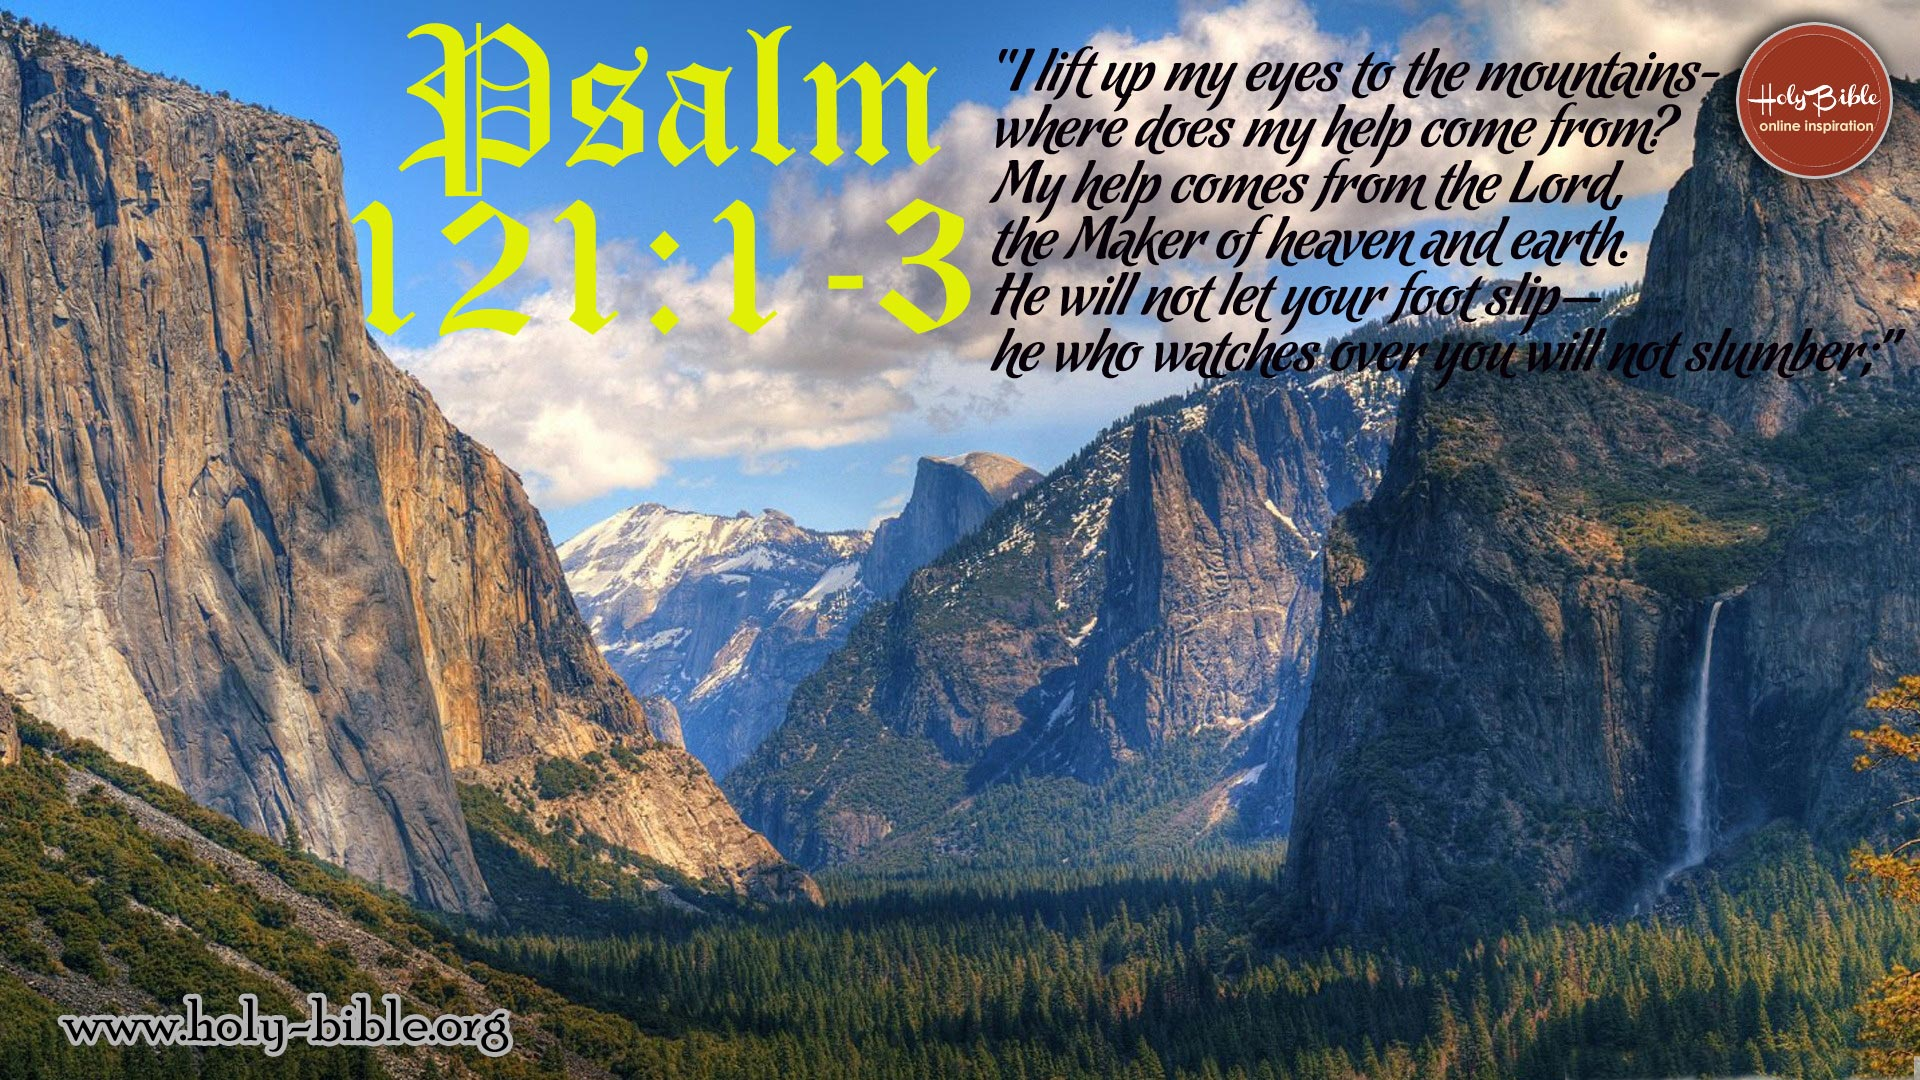 Bible Verse Of the day - Psalm 121:1-3